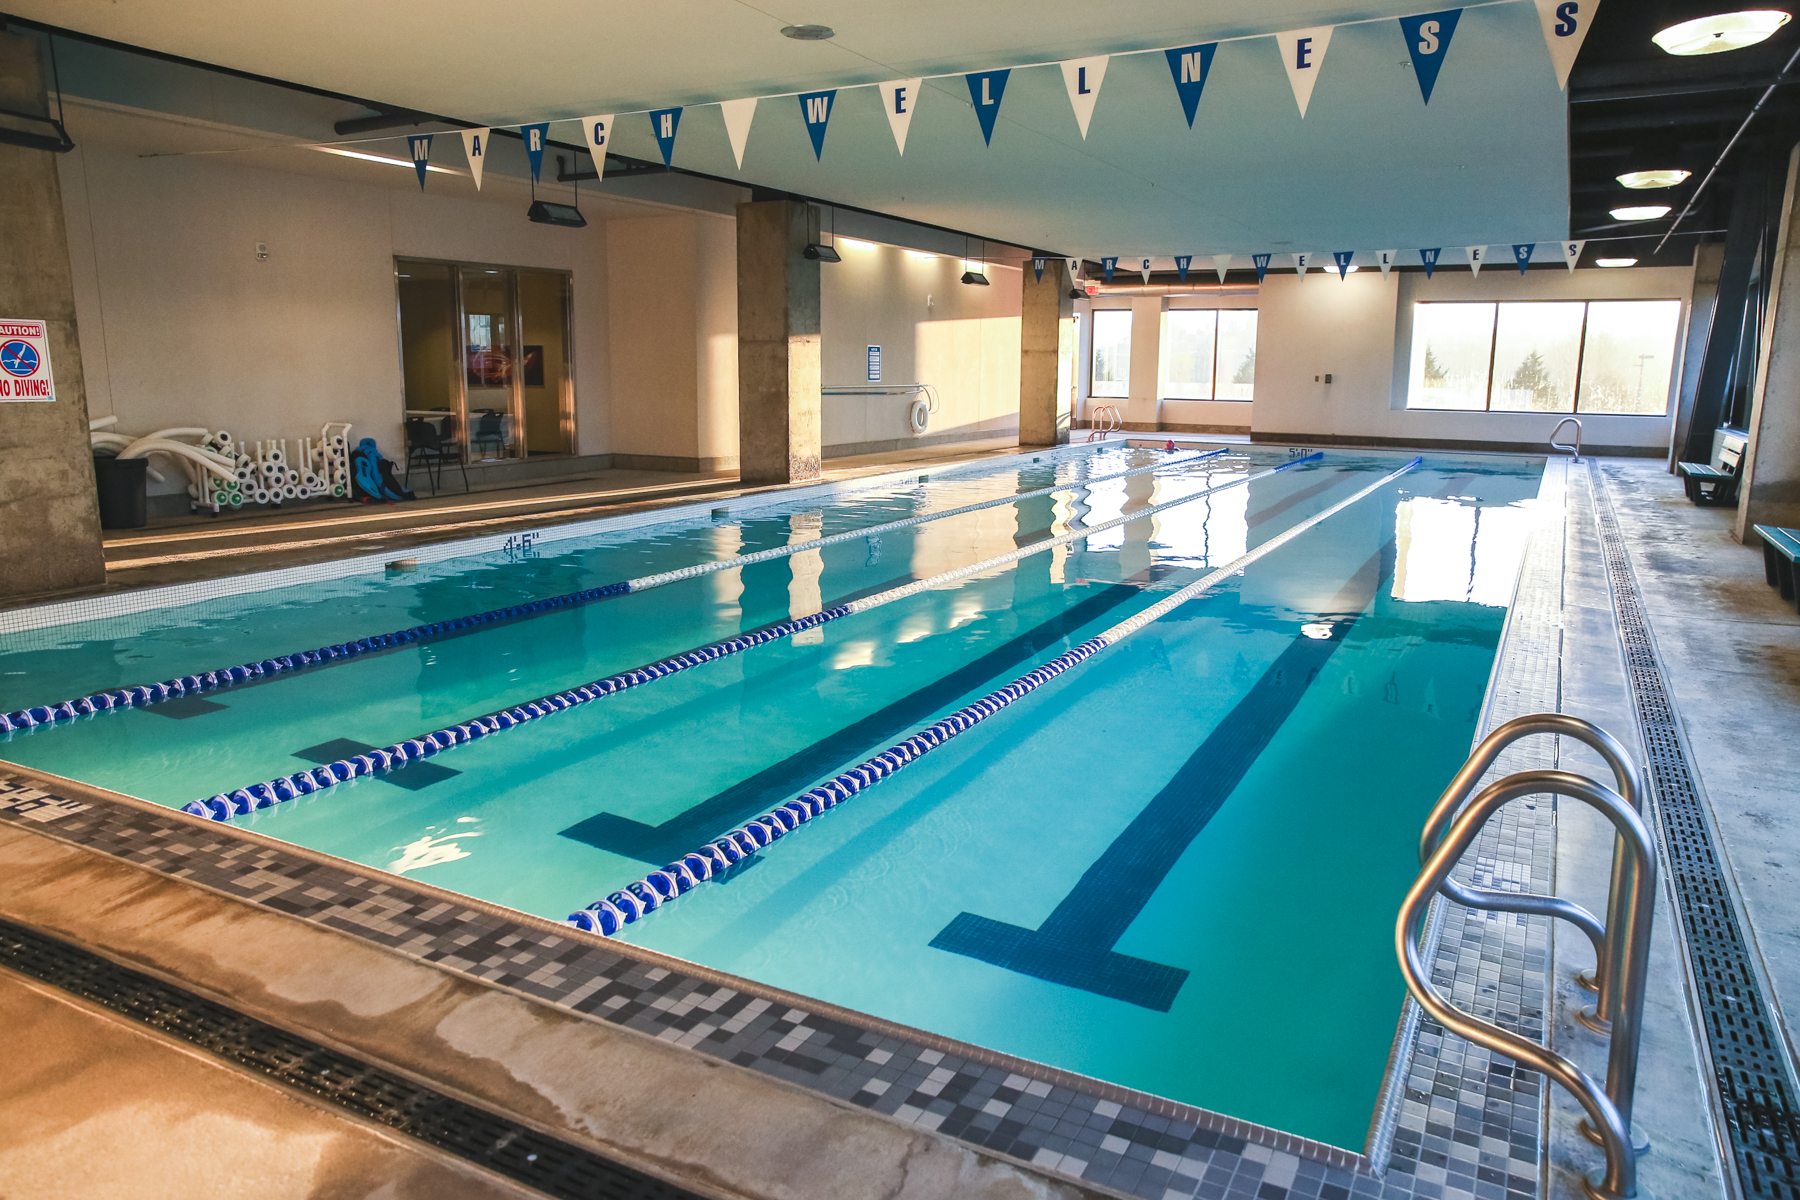 Wide view of march wellness four-lane lap swimming pool.